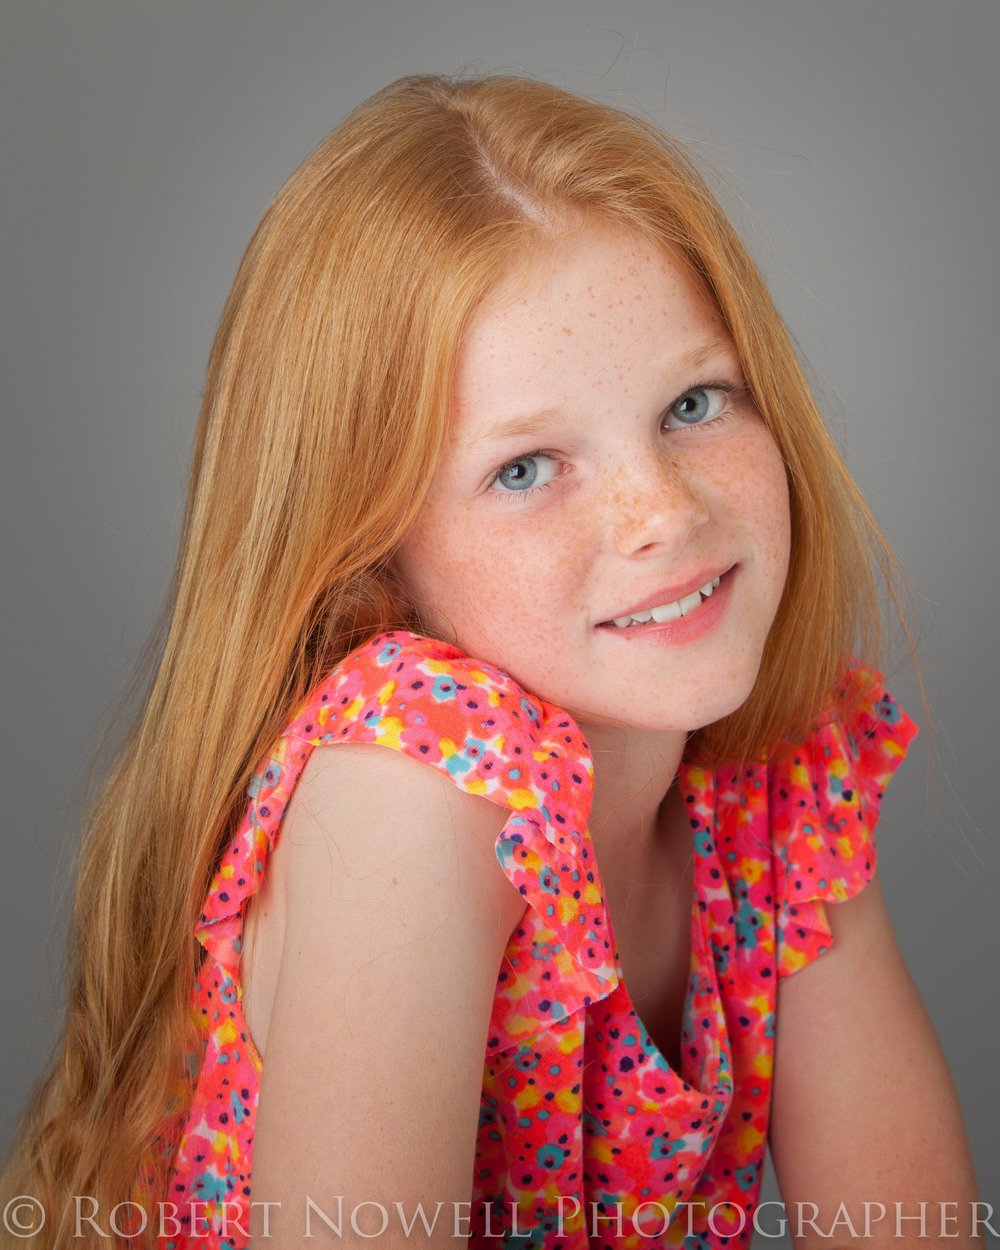 Wilhelmina Kids & Teens represents newborns through teens for modeling and acting. Our models and actors can be seen in top fashion and retail campaigns, TV commercials, TV series, and motion pictures.